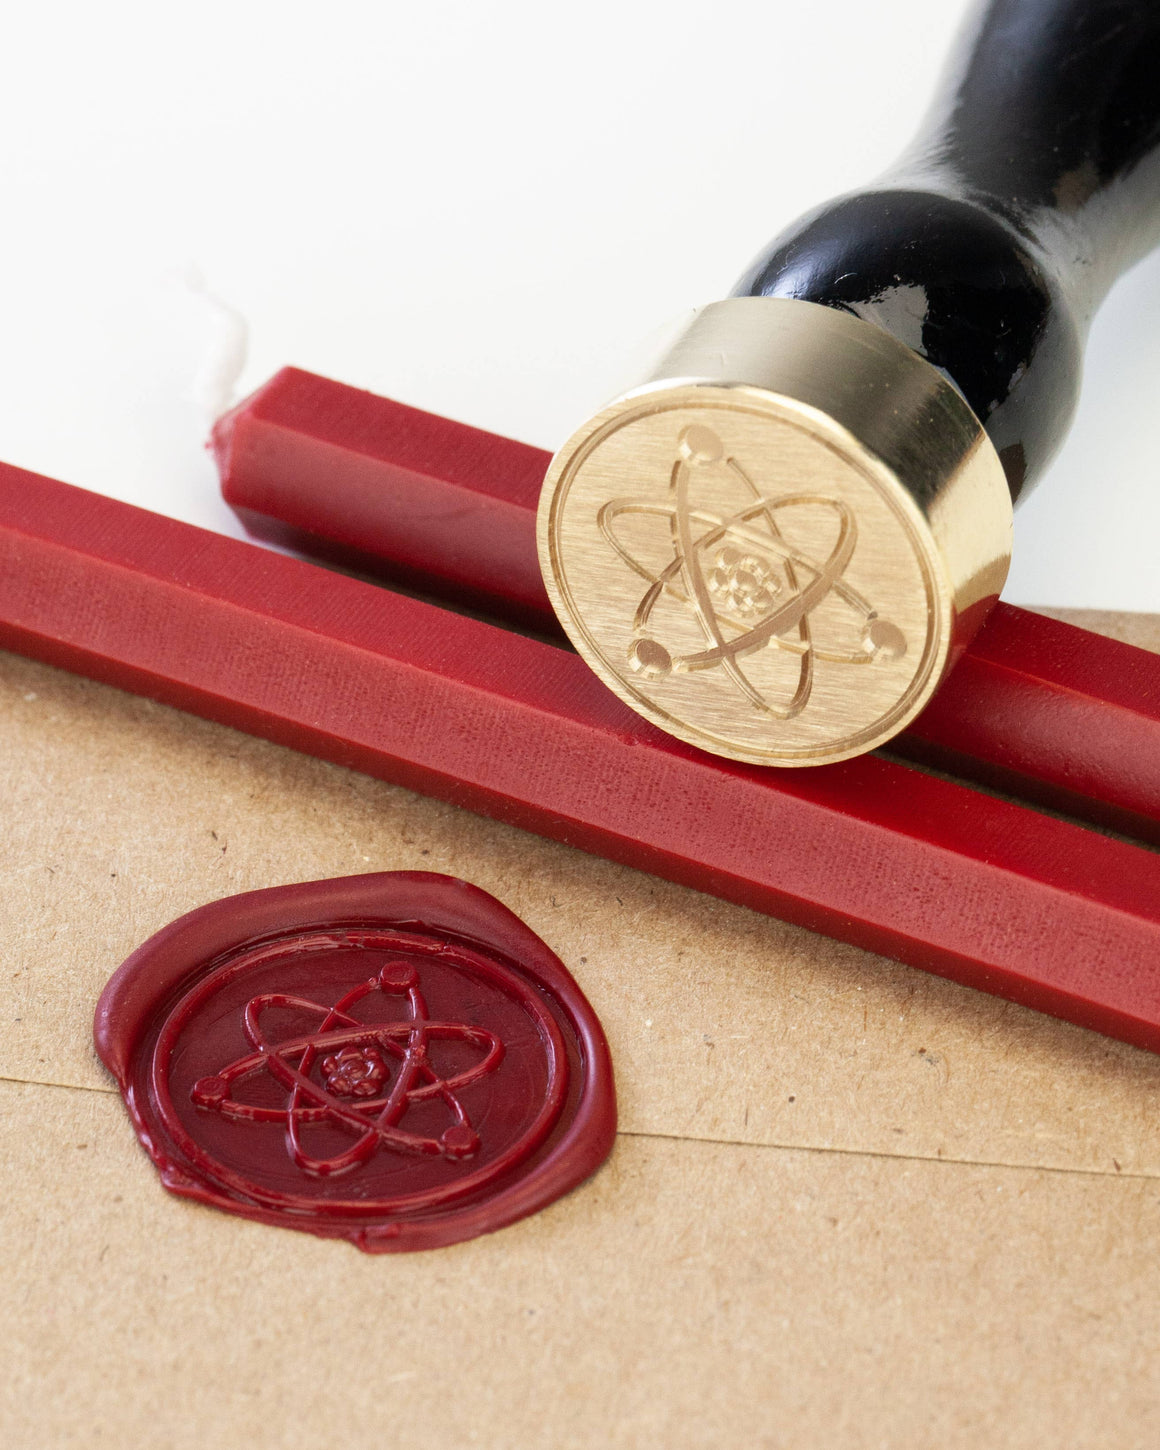 Cognitive Surplus - Lithium Atom Wax Seal Kit